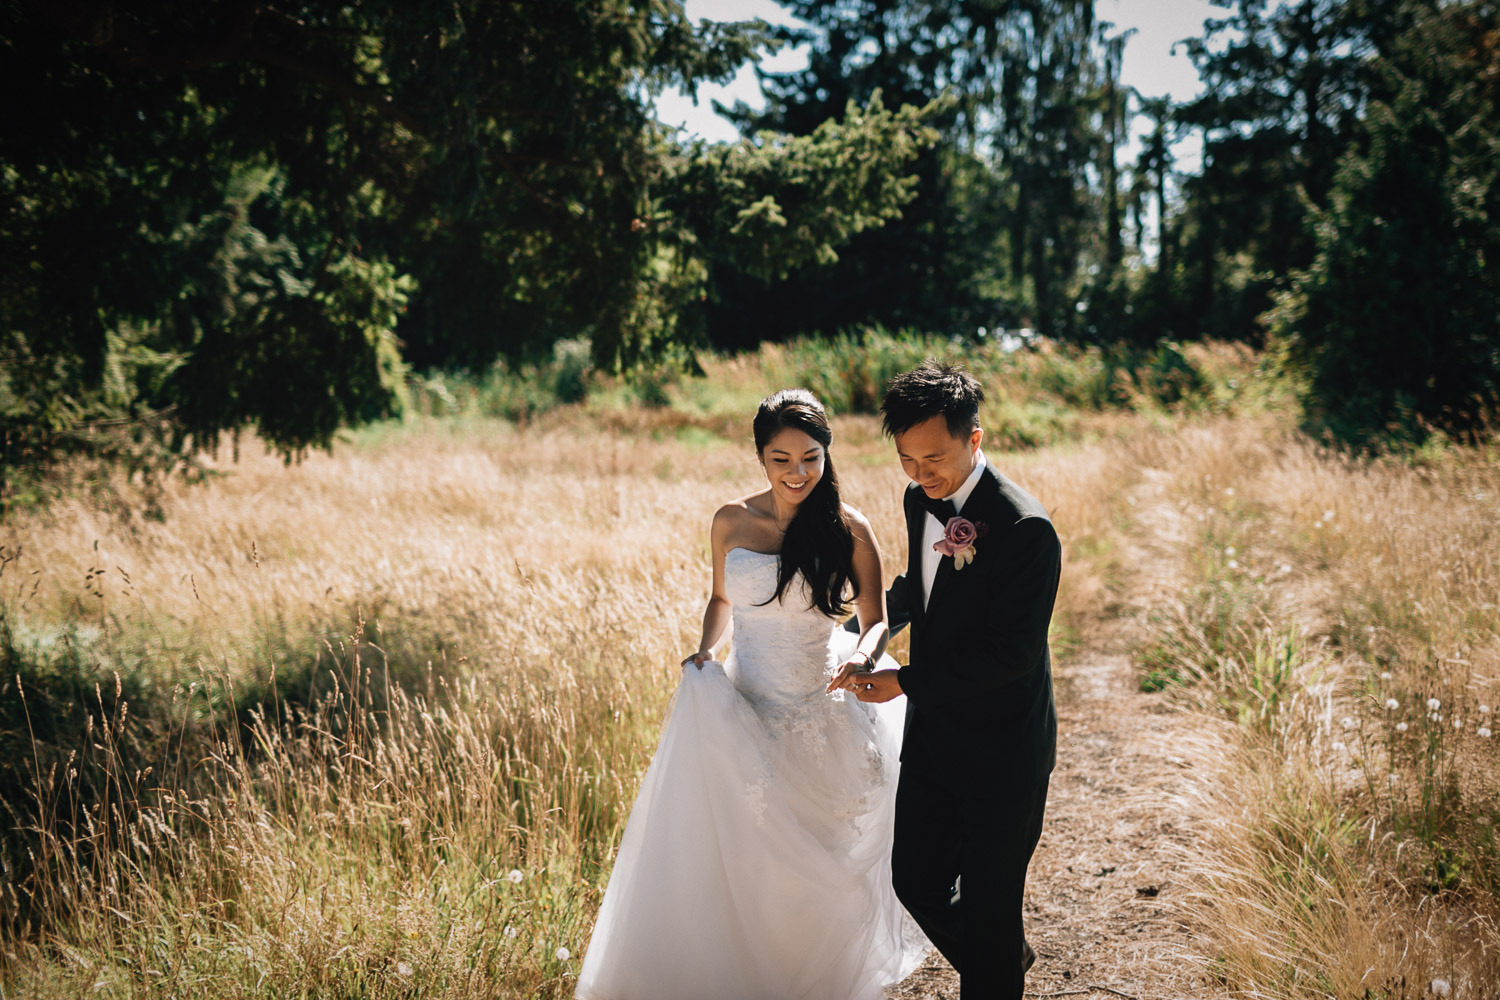 terra nova richmond wedding portrait photography summer